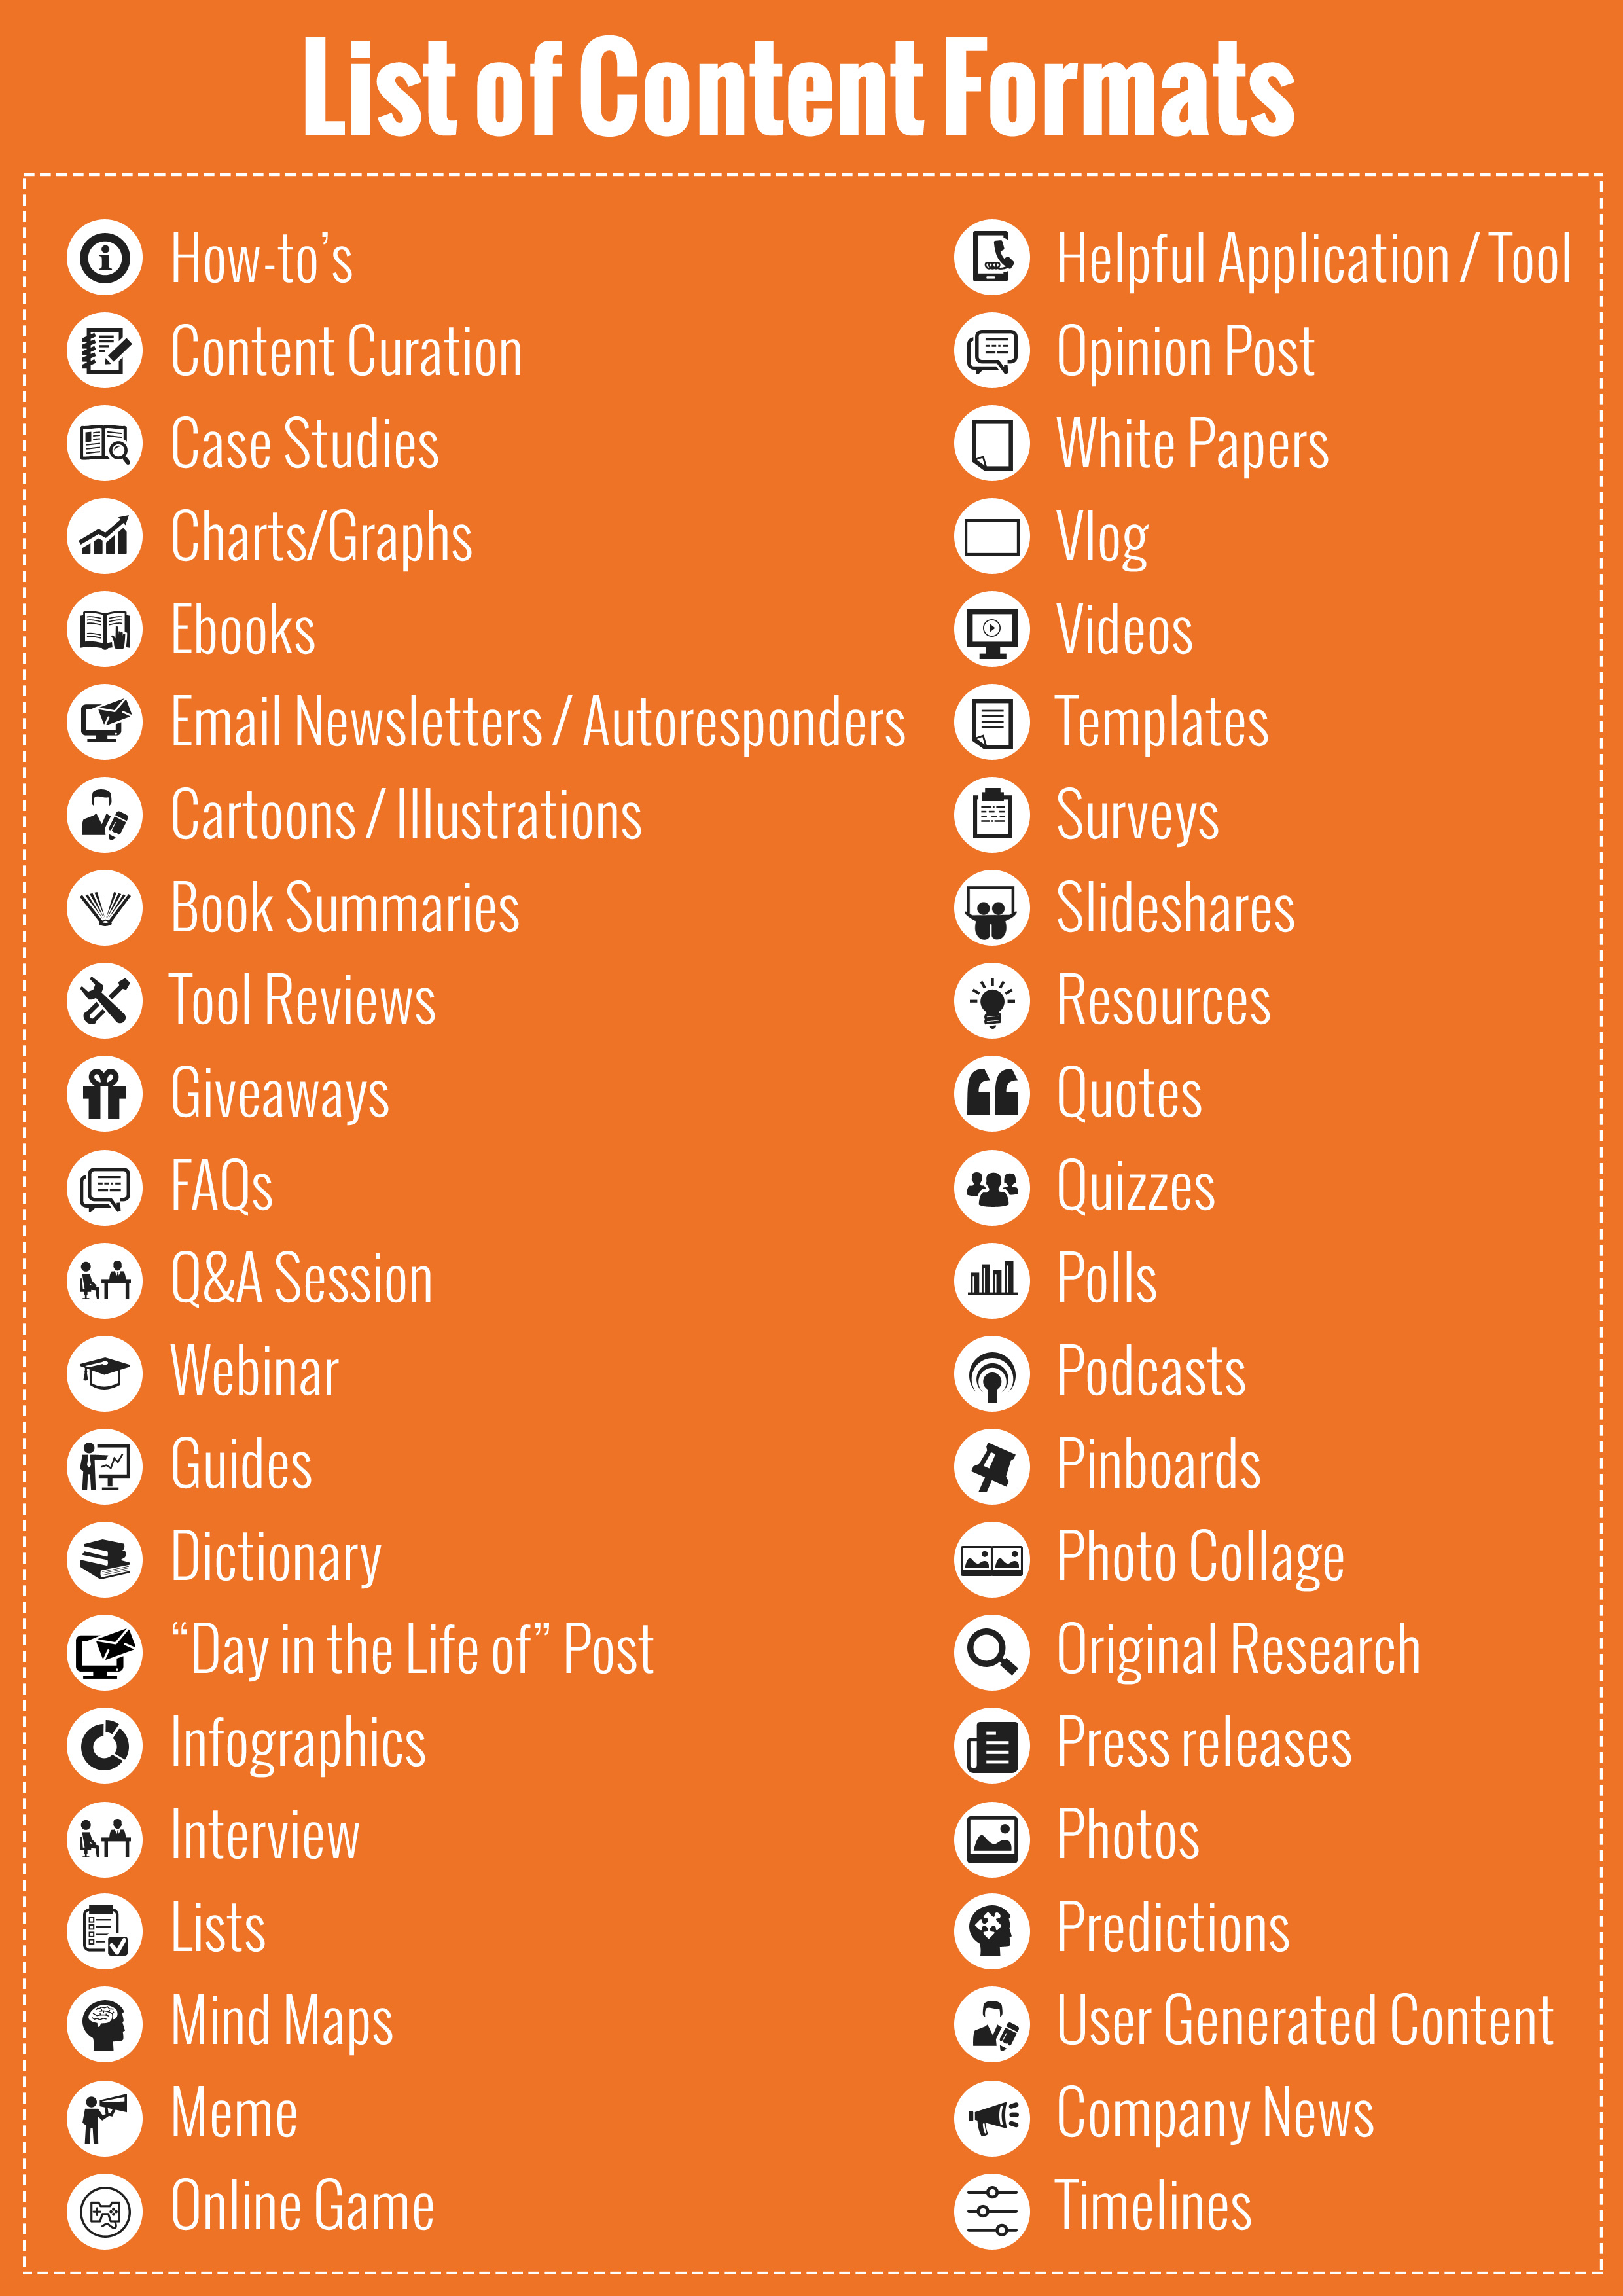 Hubspot's 44 types of content